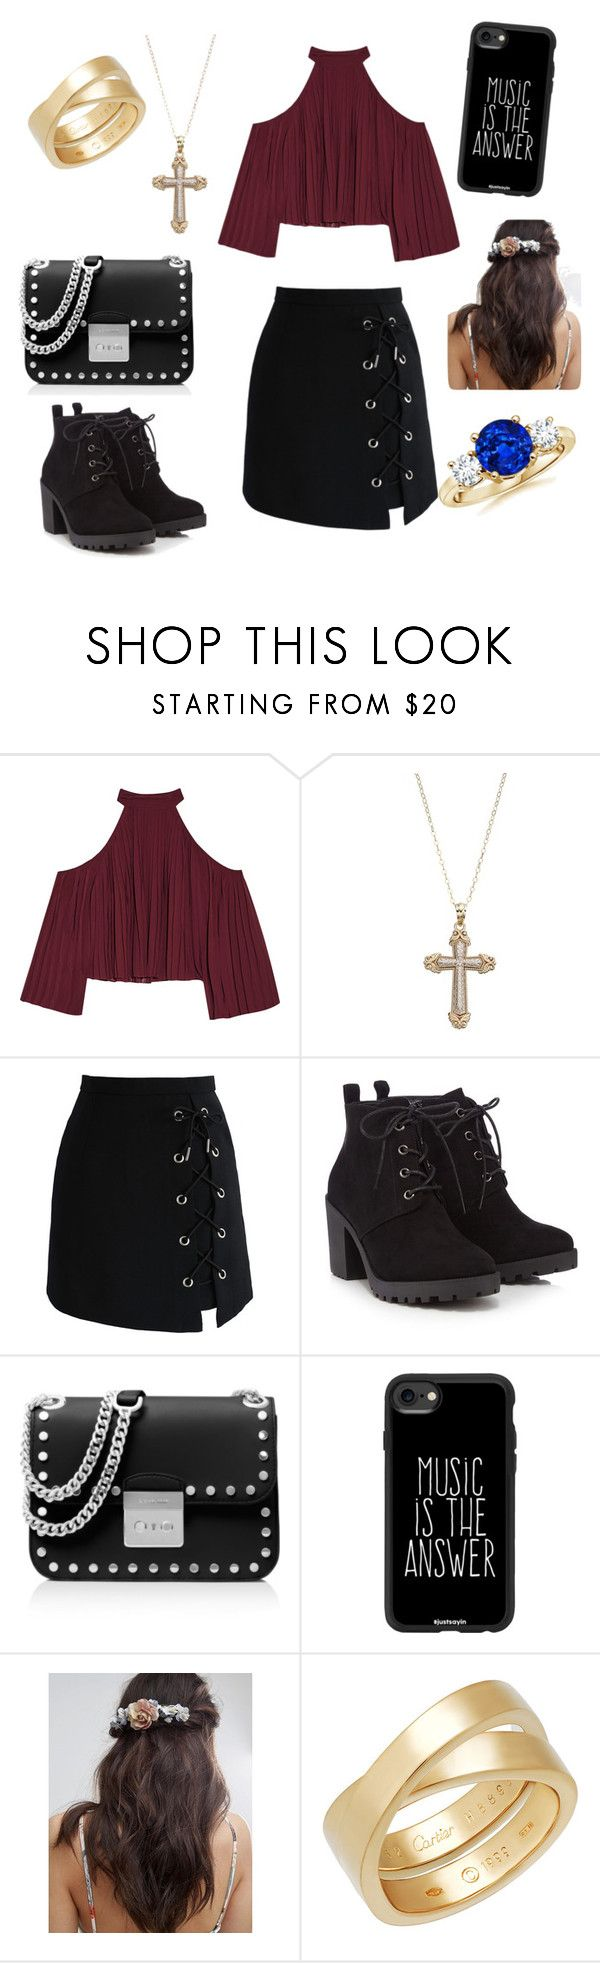 """First date"" by missheru ❤ liked on Polyvore featuring W118 by Walter Baker, Chicwish, Red Herring, MICHAEL Michael Kors, Casetify, Her Curious Nature and Cartier"